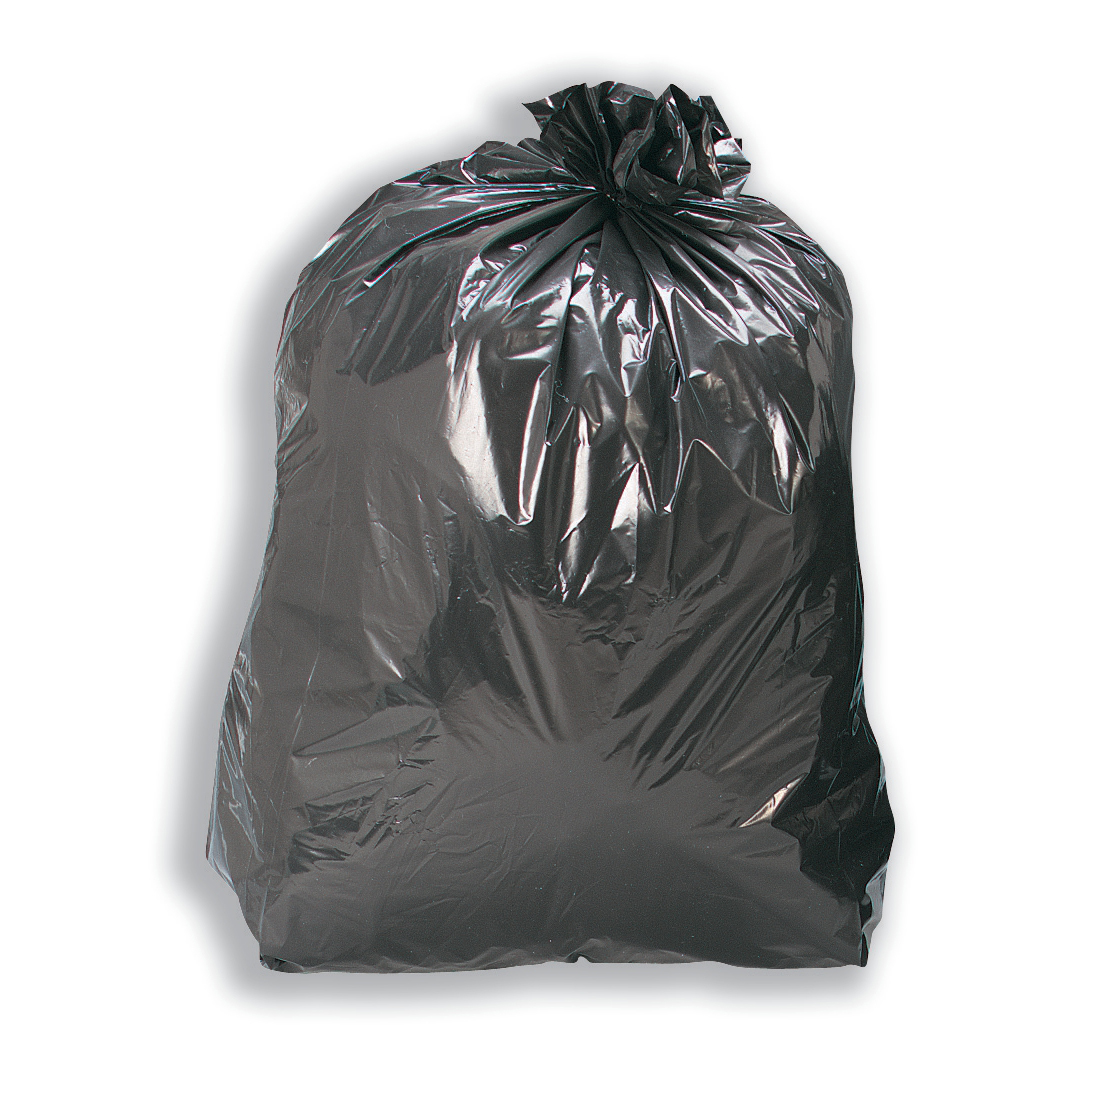 Bin Bags & Liners 5 Star Facilities Bin Liners Recycled Medium/Heavy Duty 110Ltr Capacity W460/775xH930mm Black Pack 200